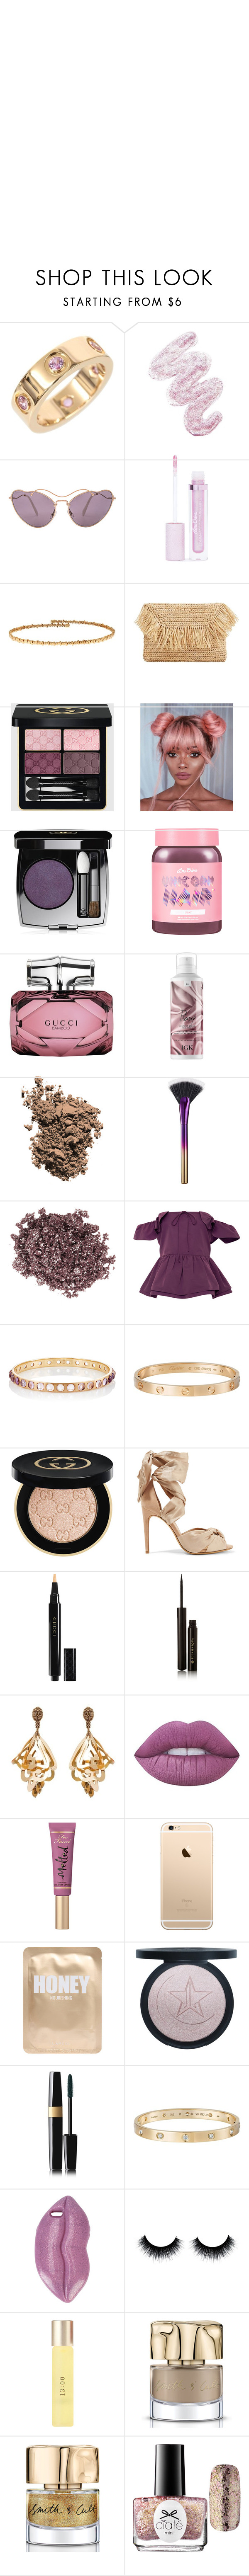 """""""Gilded butterfly"""" by mylano ❤ liked on Polyvore featuring Cartier, Lime Crime, Miu Miu, Suzanne Kalan, MANGO, Gucci, Chanel, Dolce&Gabbana, tarte and Coldwater Creek"""